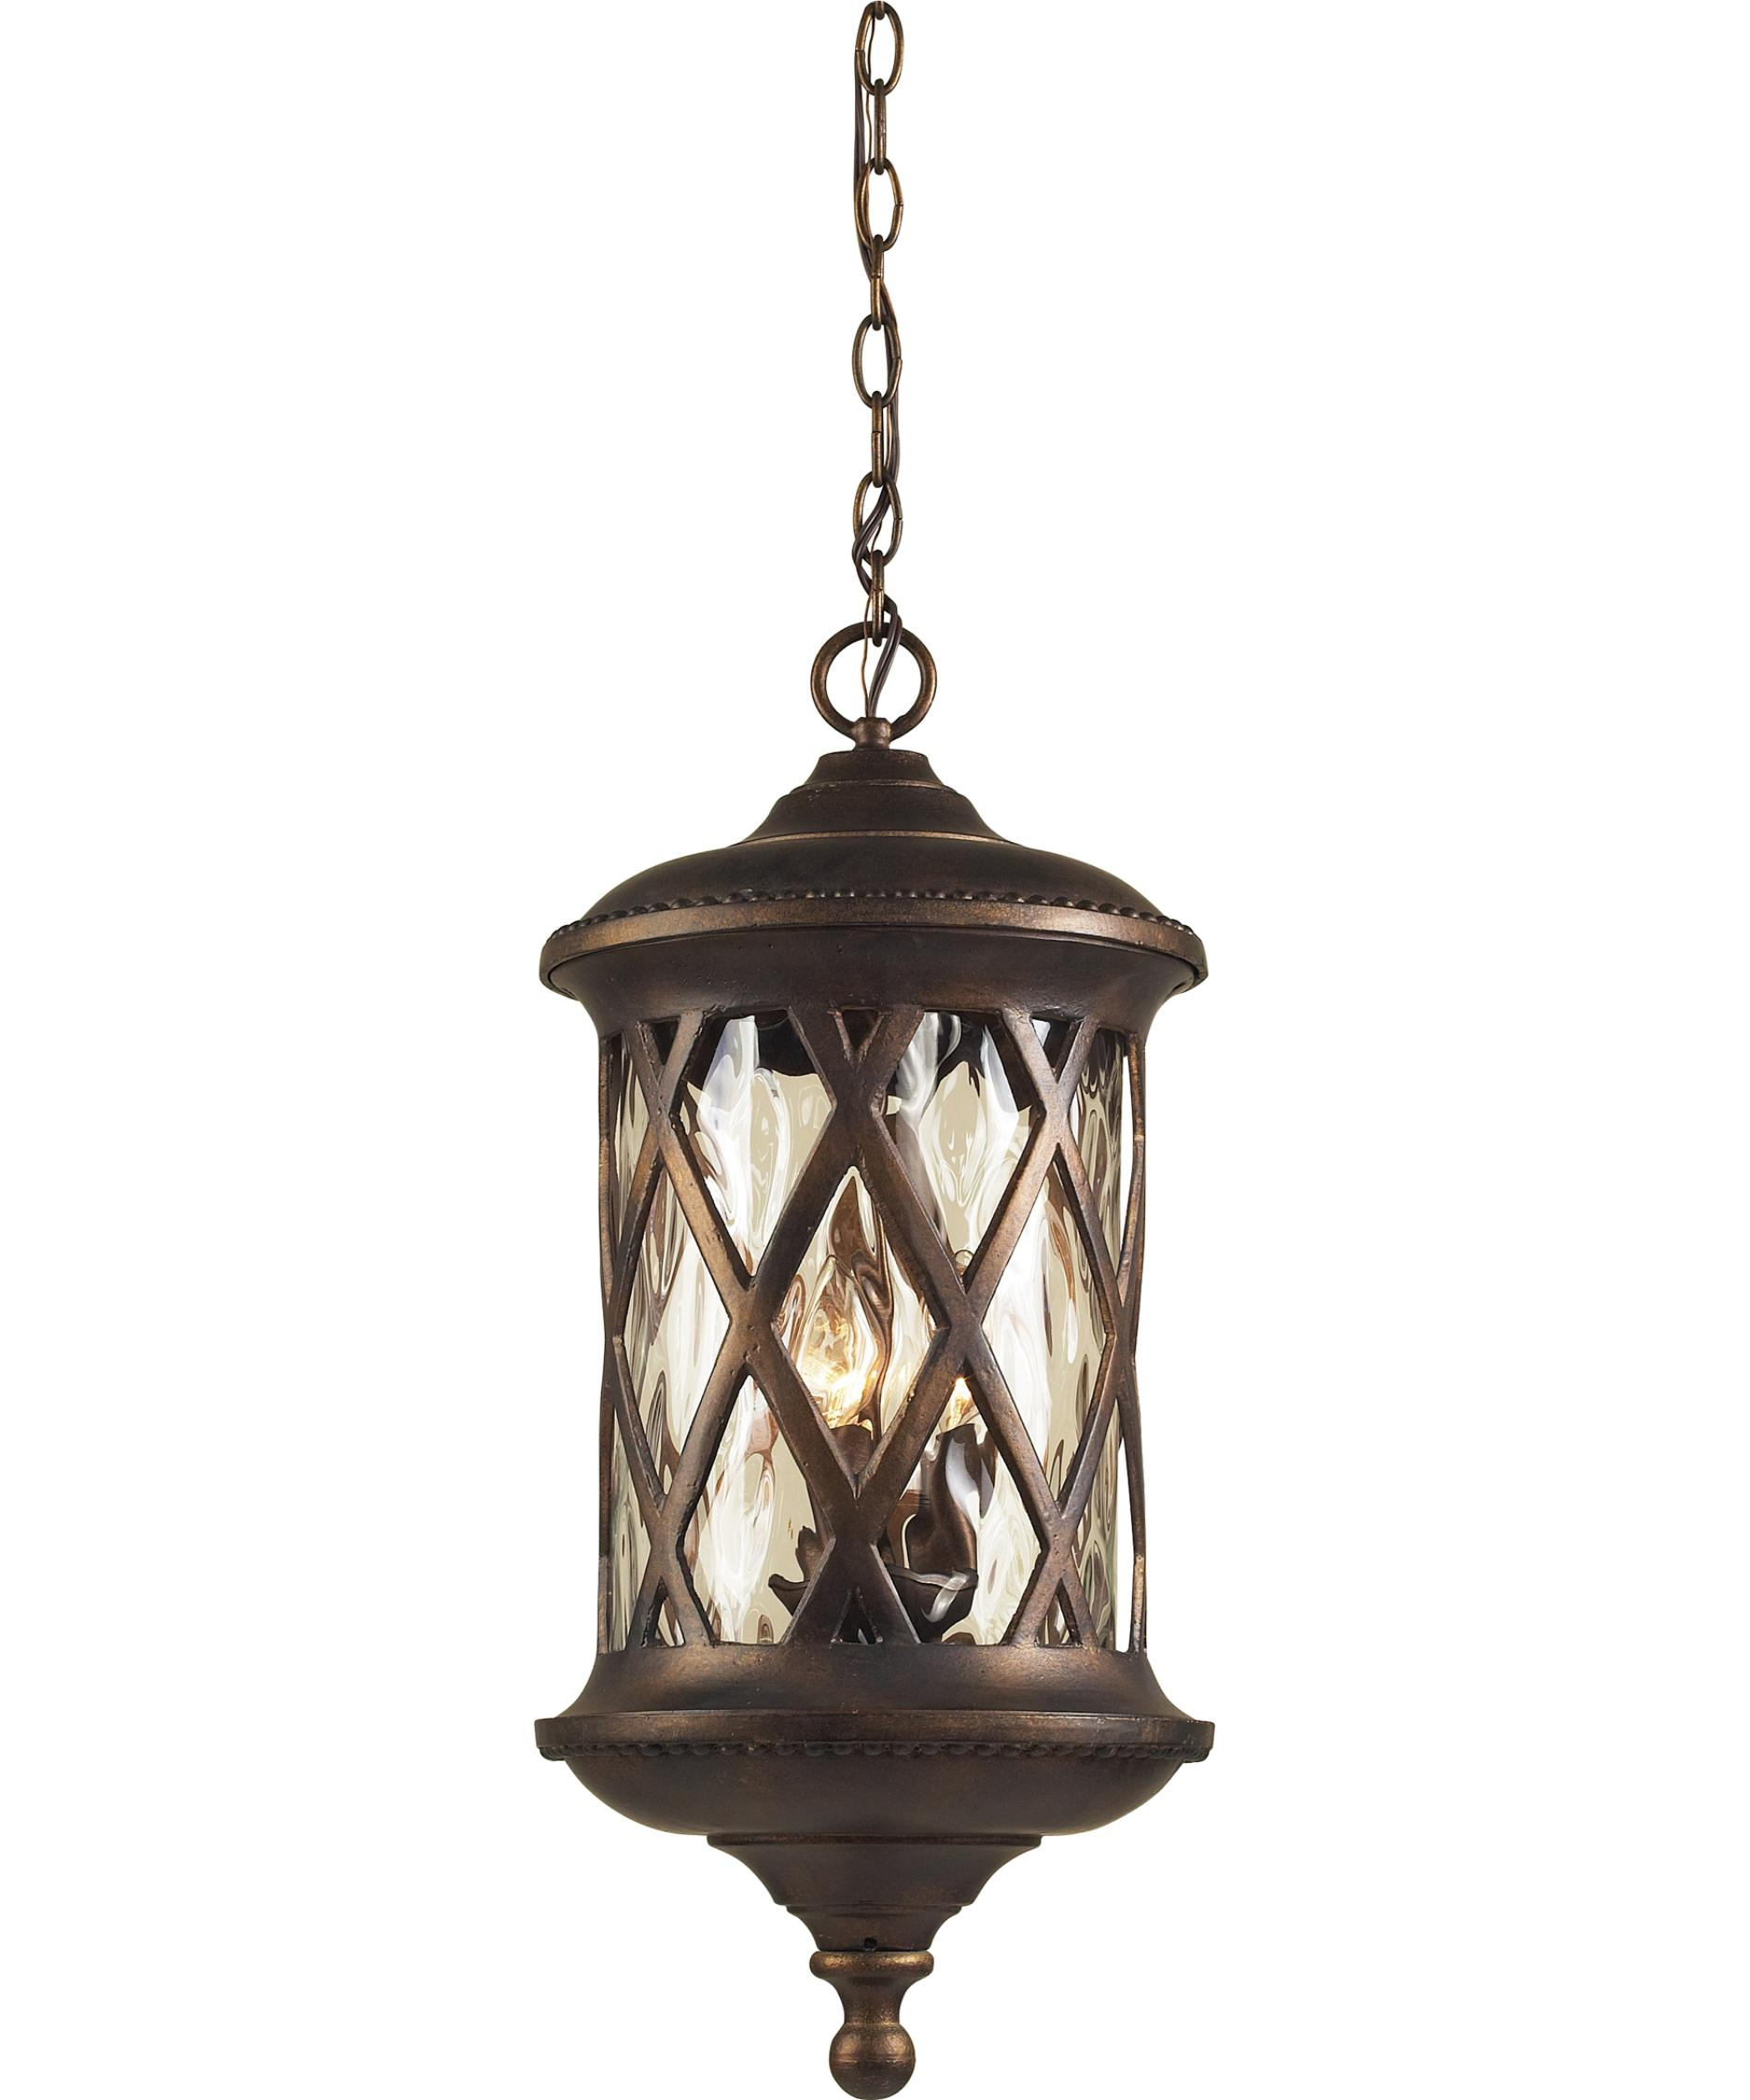 Outdoor hanging lighting - Shown In Hazelnut Bronze Finish And Water Glass